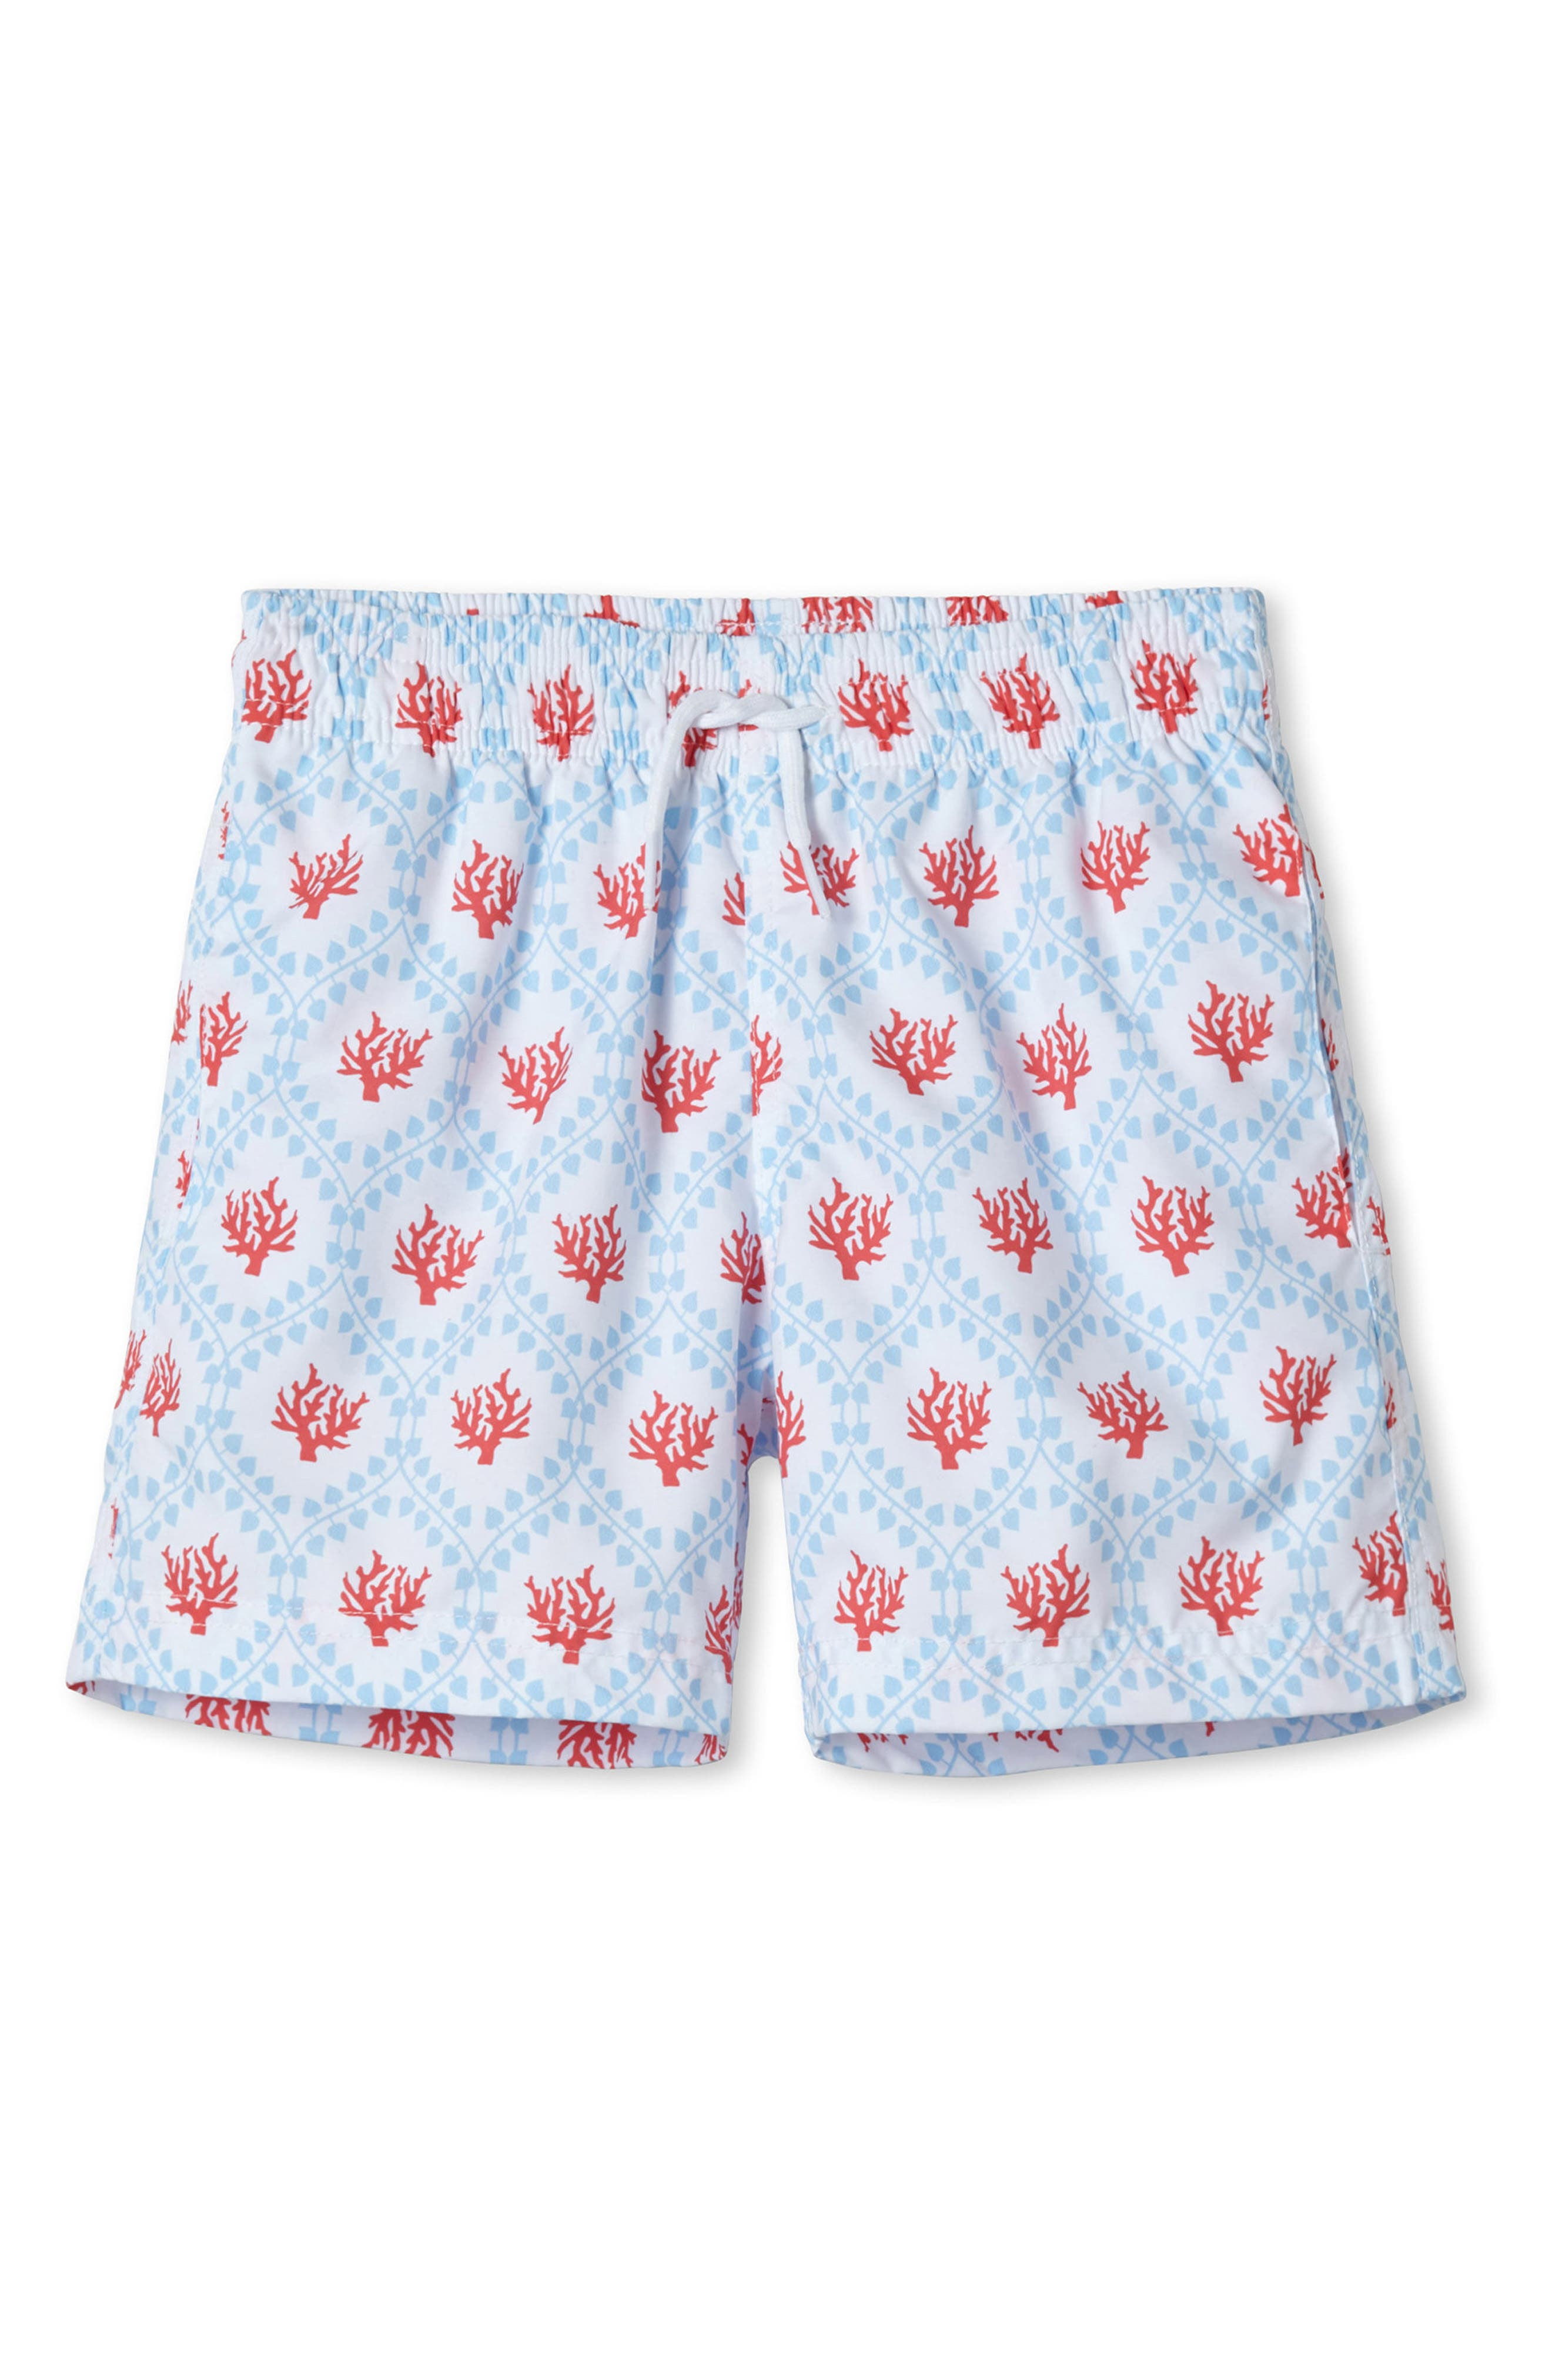 Main Image - Stella Cove Red Coral Swim Trunks (Toddler Boys & Little Boys)